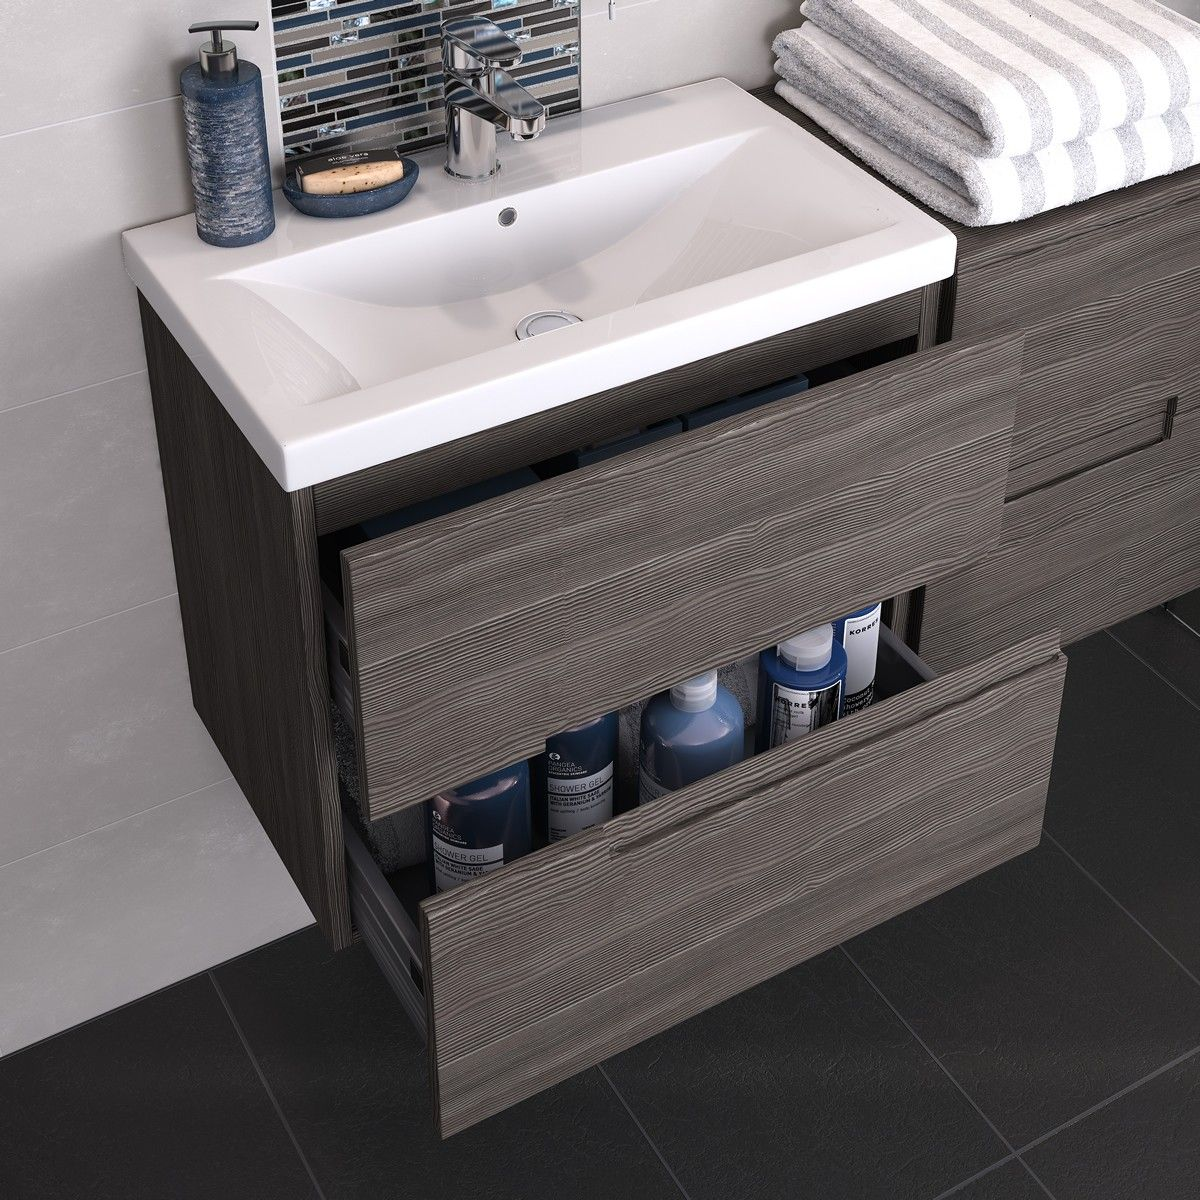 gloss gloss modular bathroom furniture collection vanity. Latest Posts Under: Bathroom Cabinets Gloss Modular Furniture Collection Vanity (